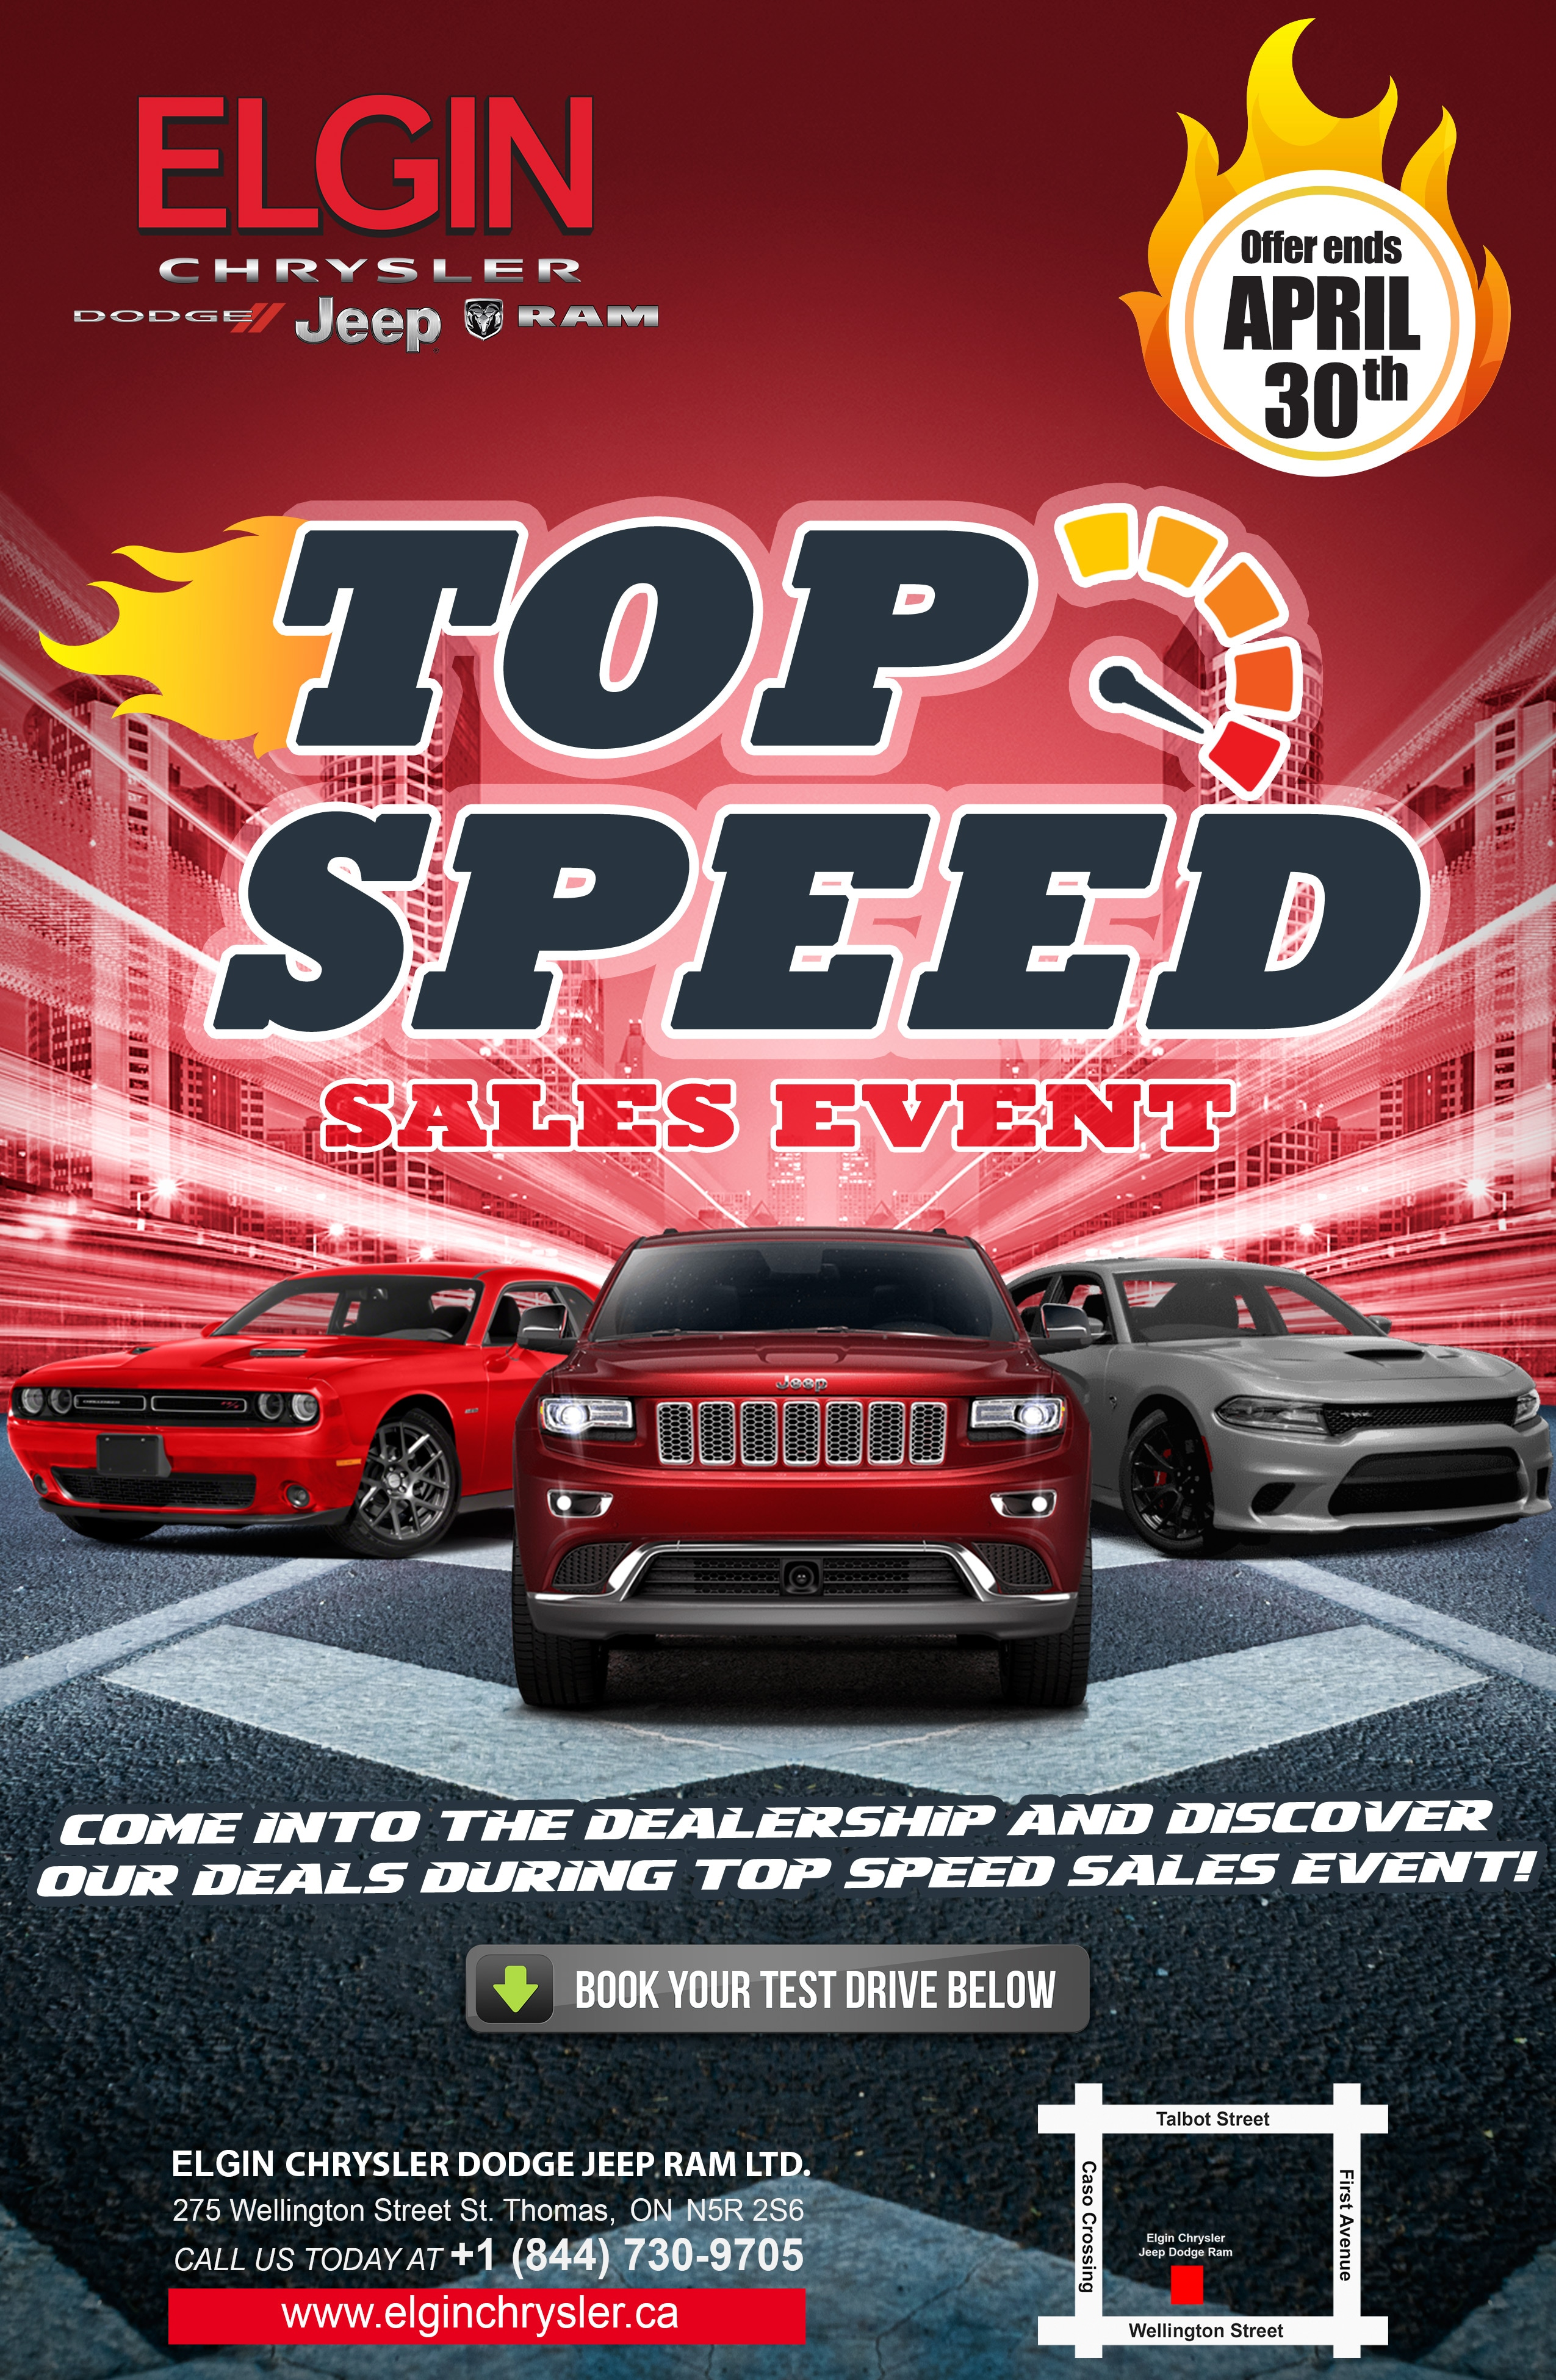 htm dealership group safford virginia va information jeep ram along chrysler to automotive is dealerships dodge springfield about page part of with welcome the a